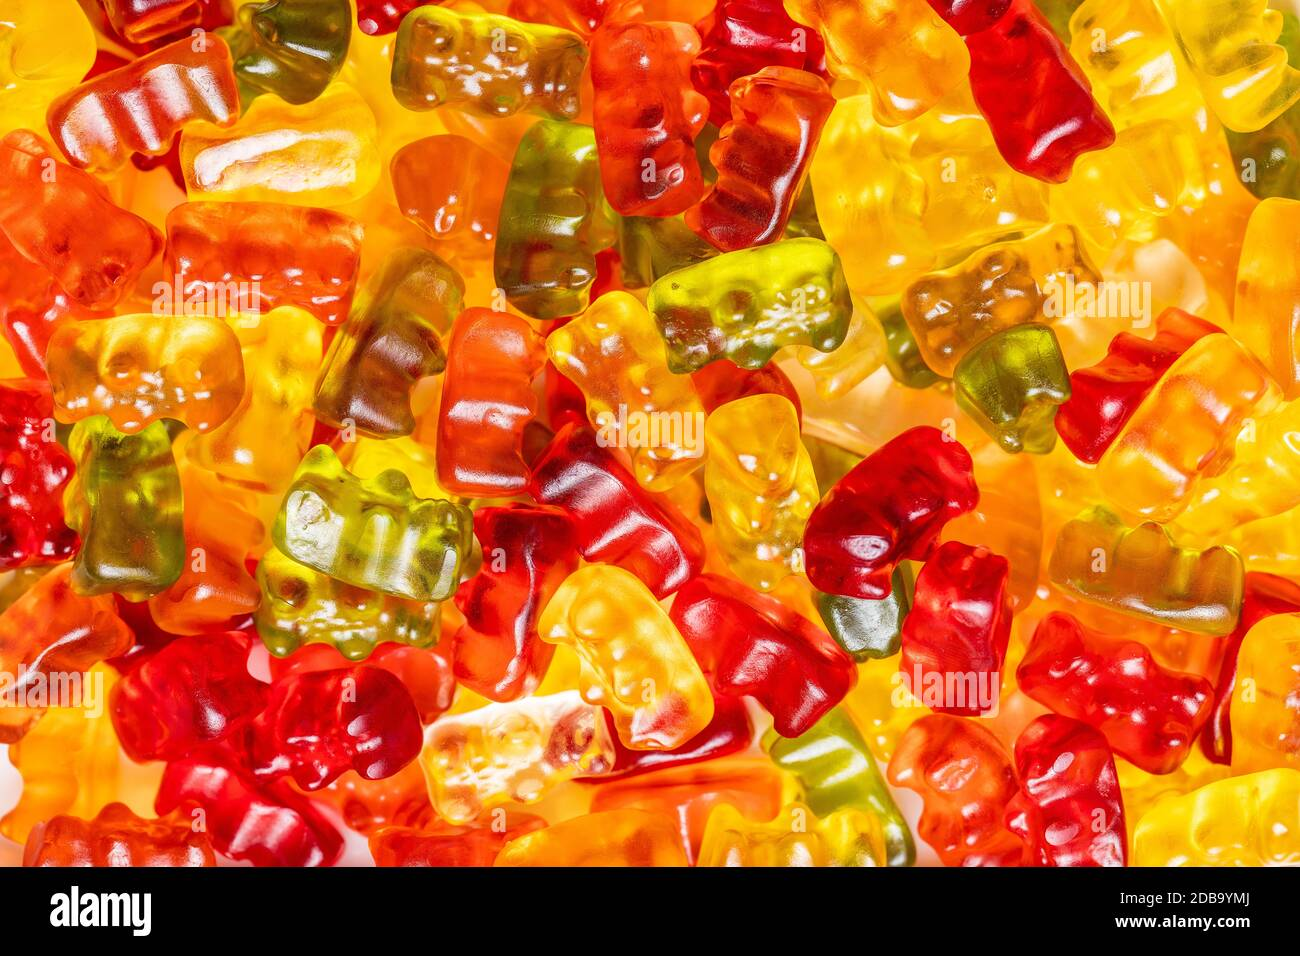 Gummy bears, jelly candy. Colorful bonbons. Stock Photo